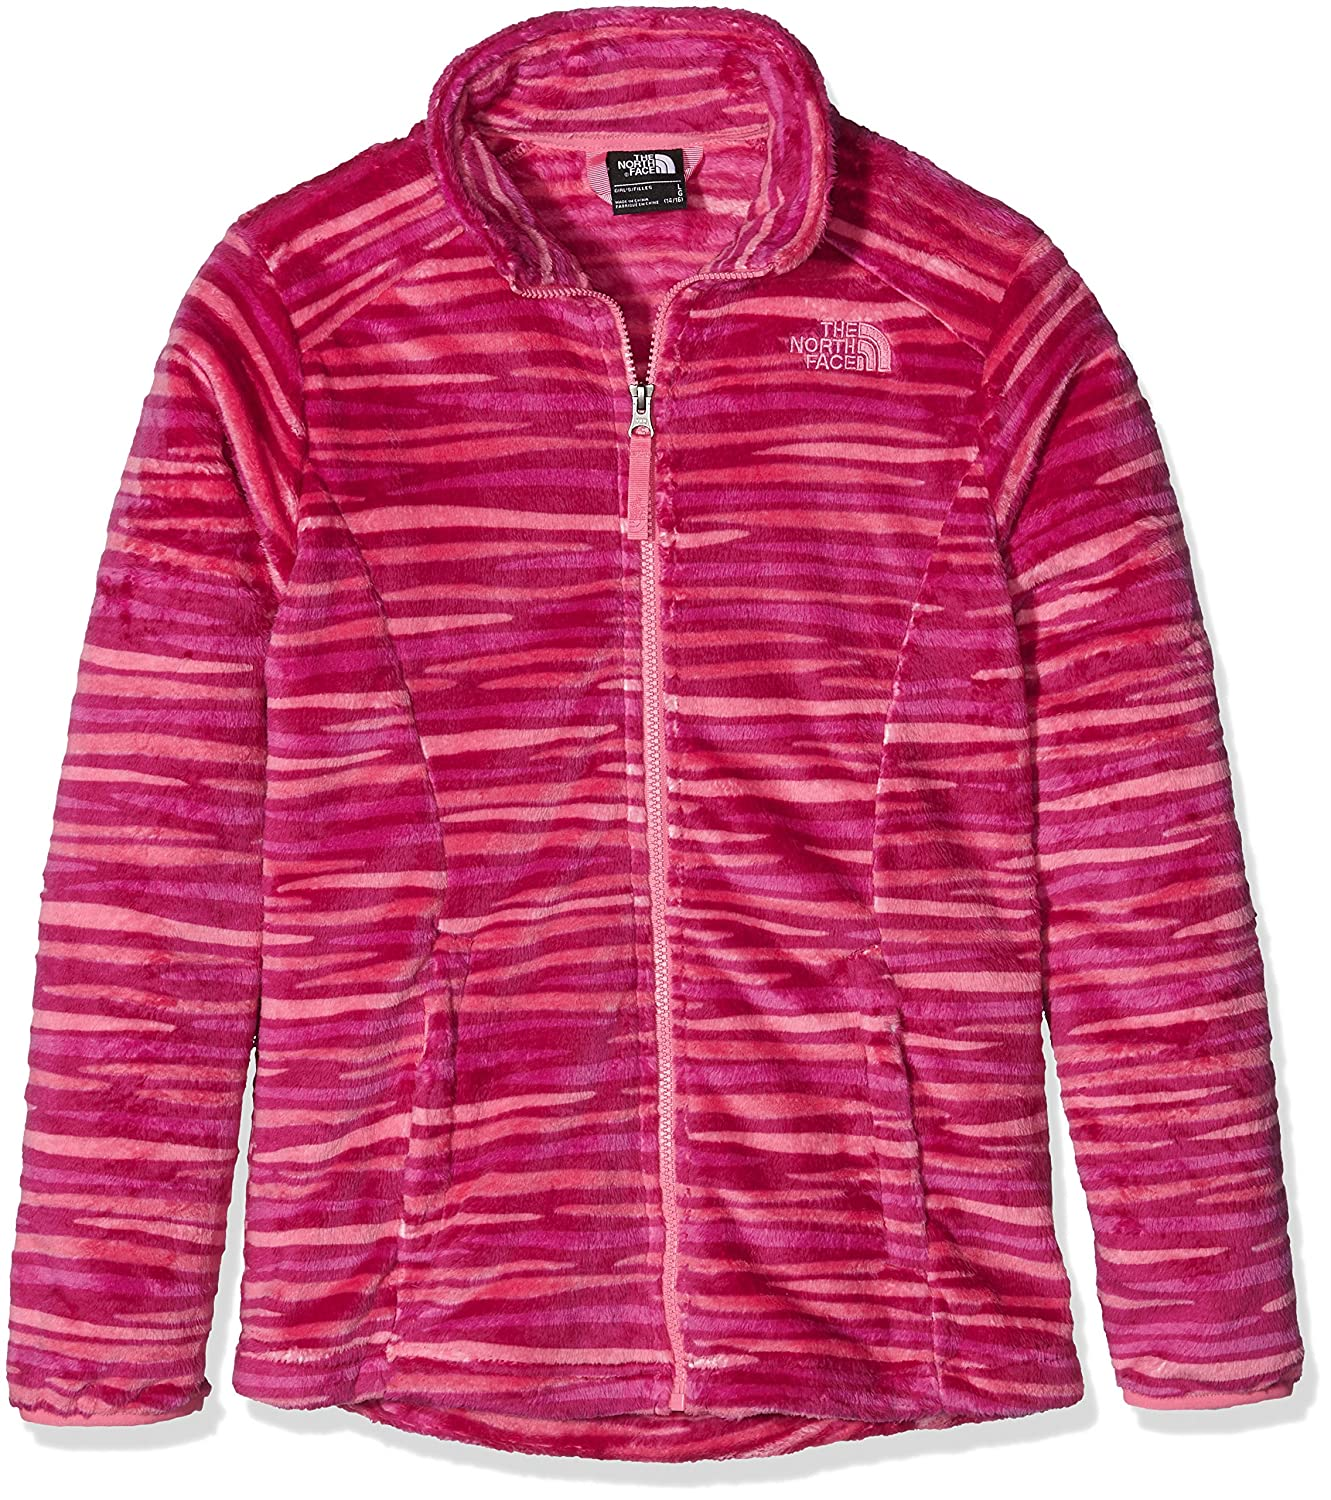 The North Face Girls' Osolita Jacket (Little Kids/Big Kids) The North Face Kids CN34